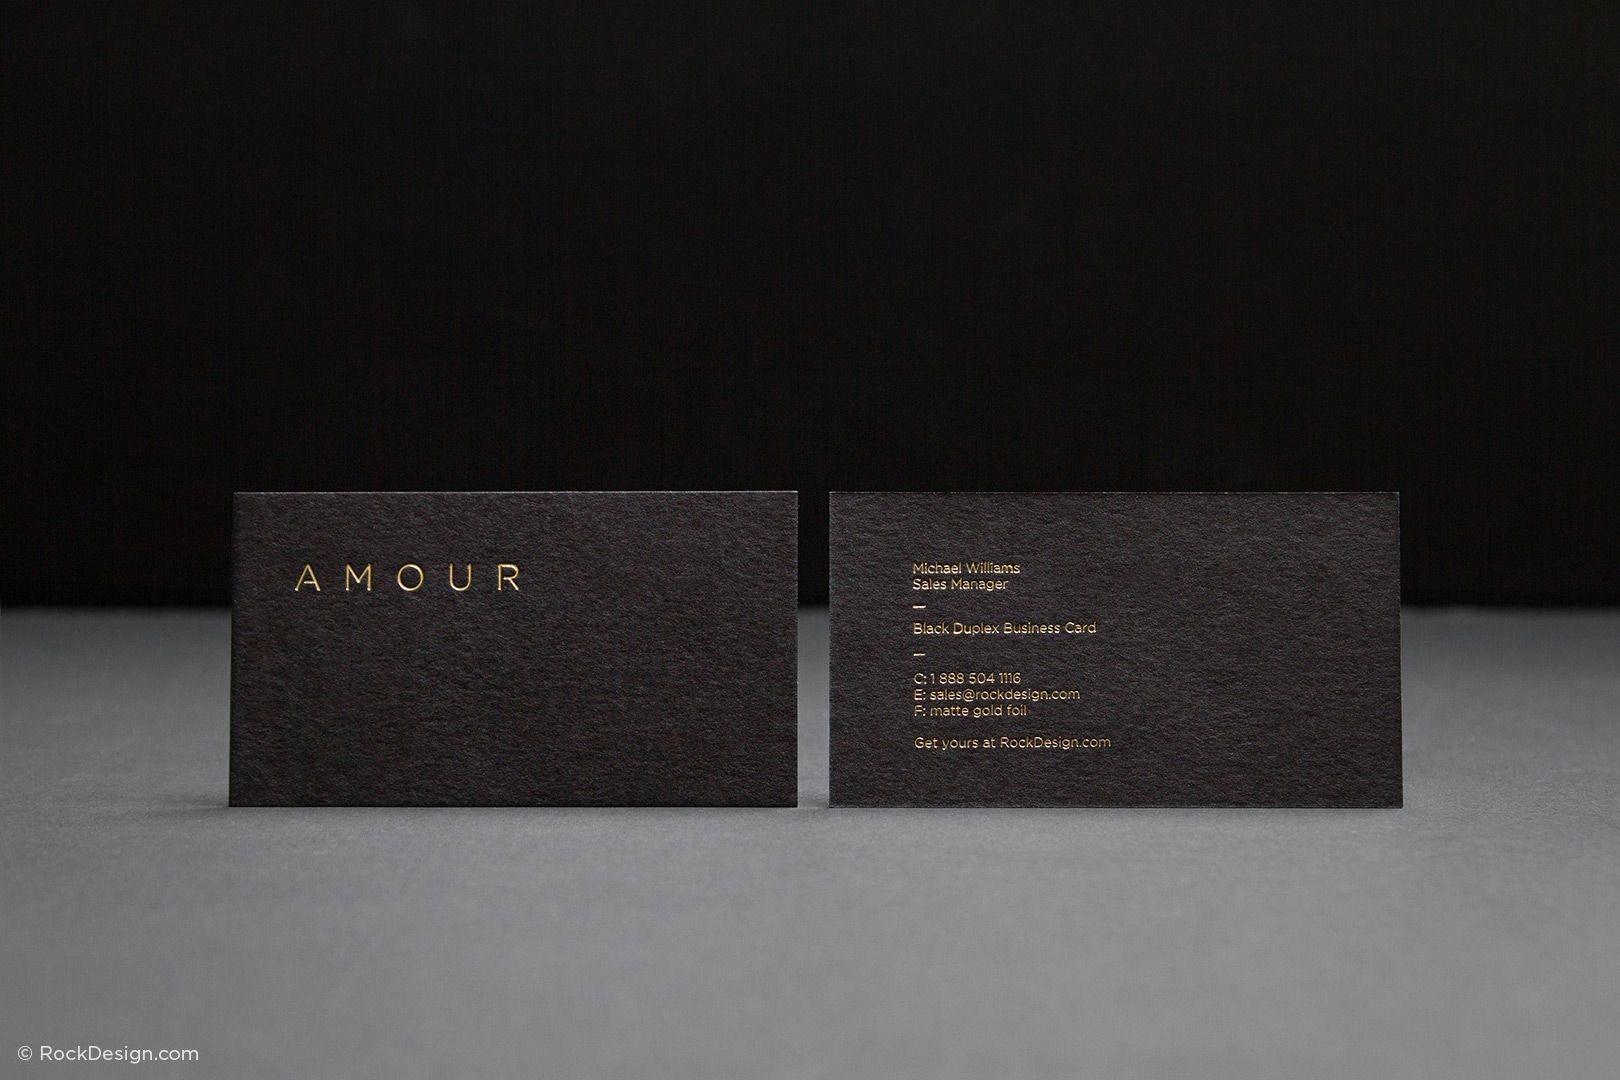 Fancy unique black business card design template amour fancy unique black business card design template amour rockdesign luxury business card printing reheart